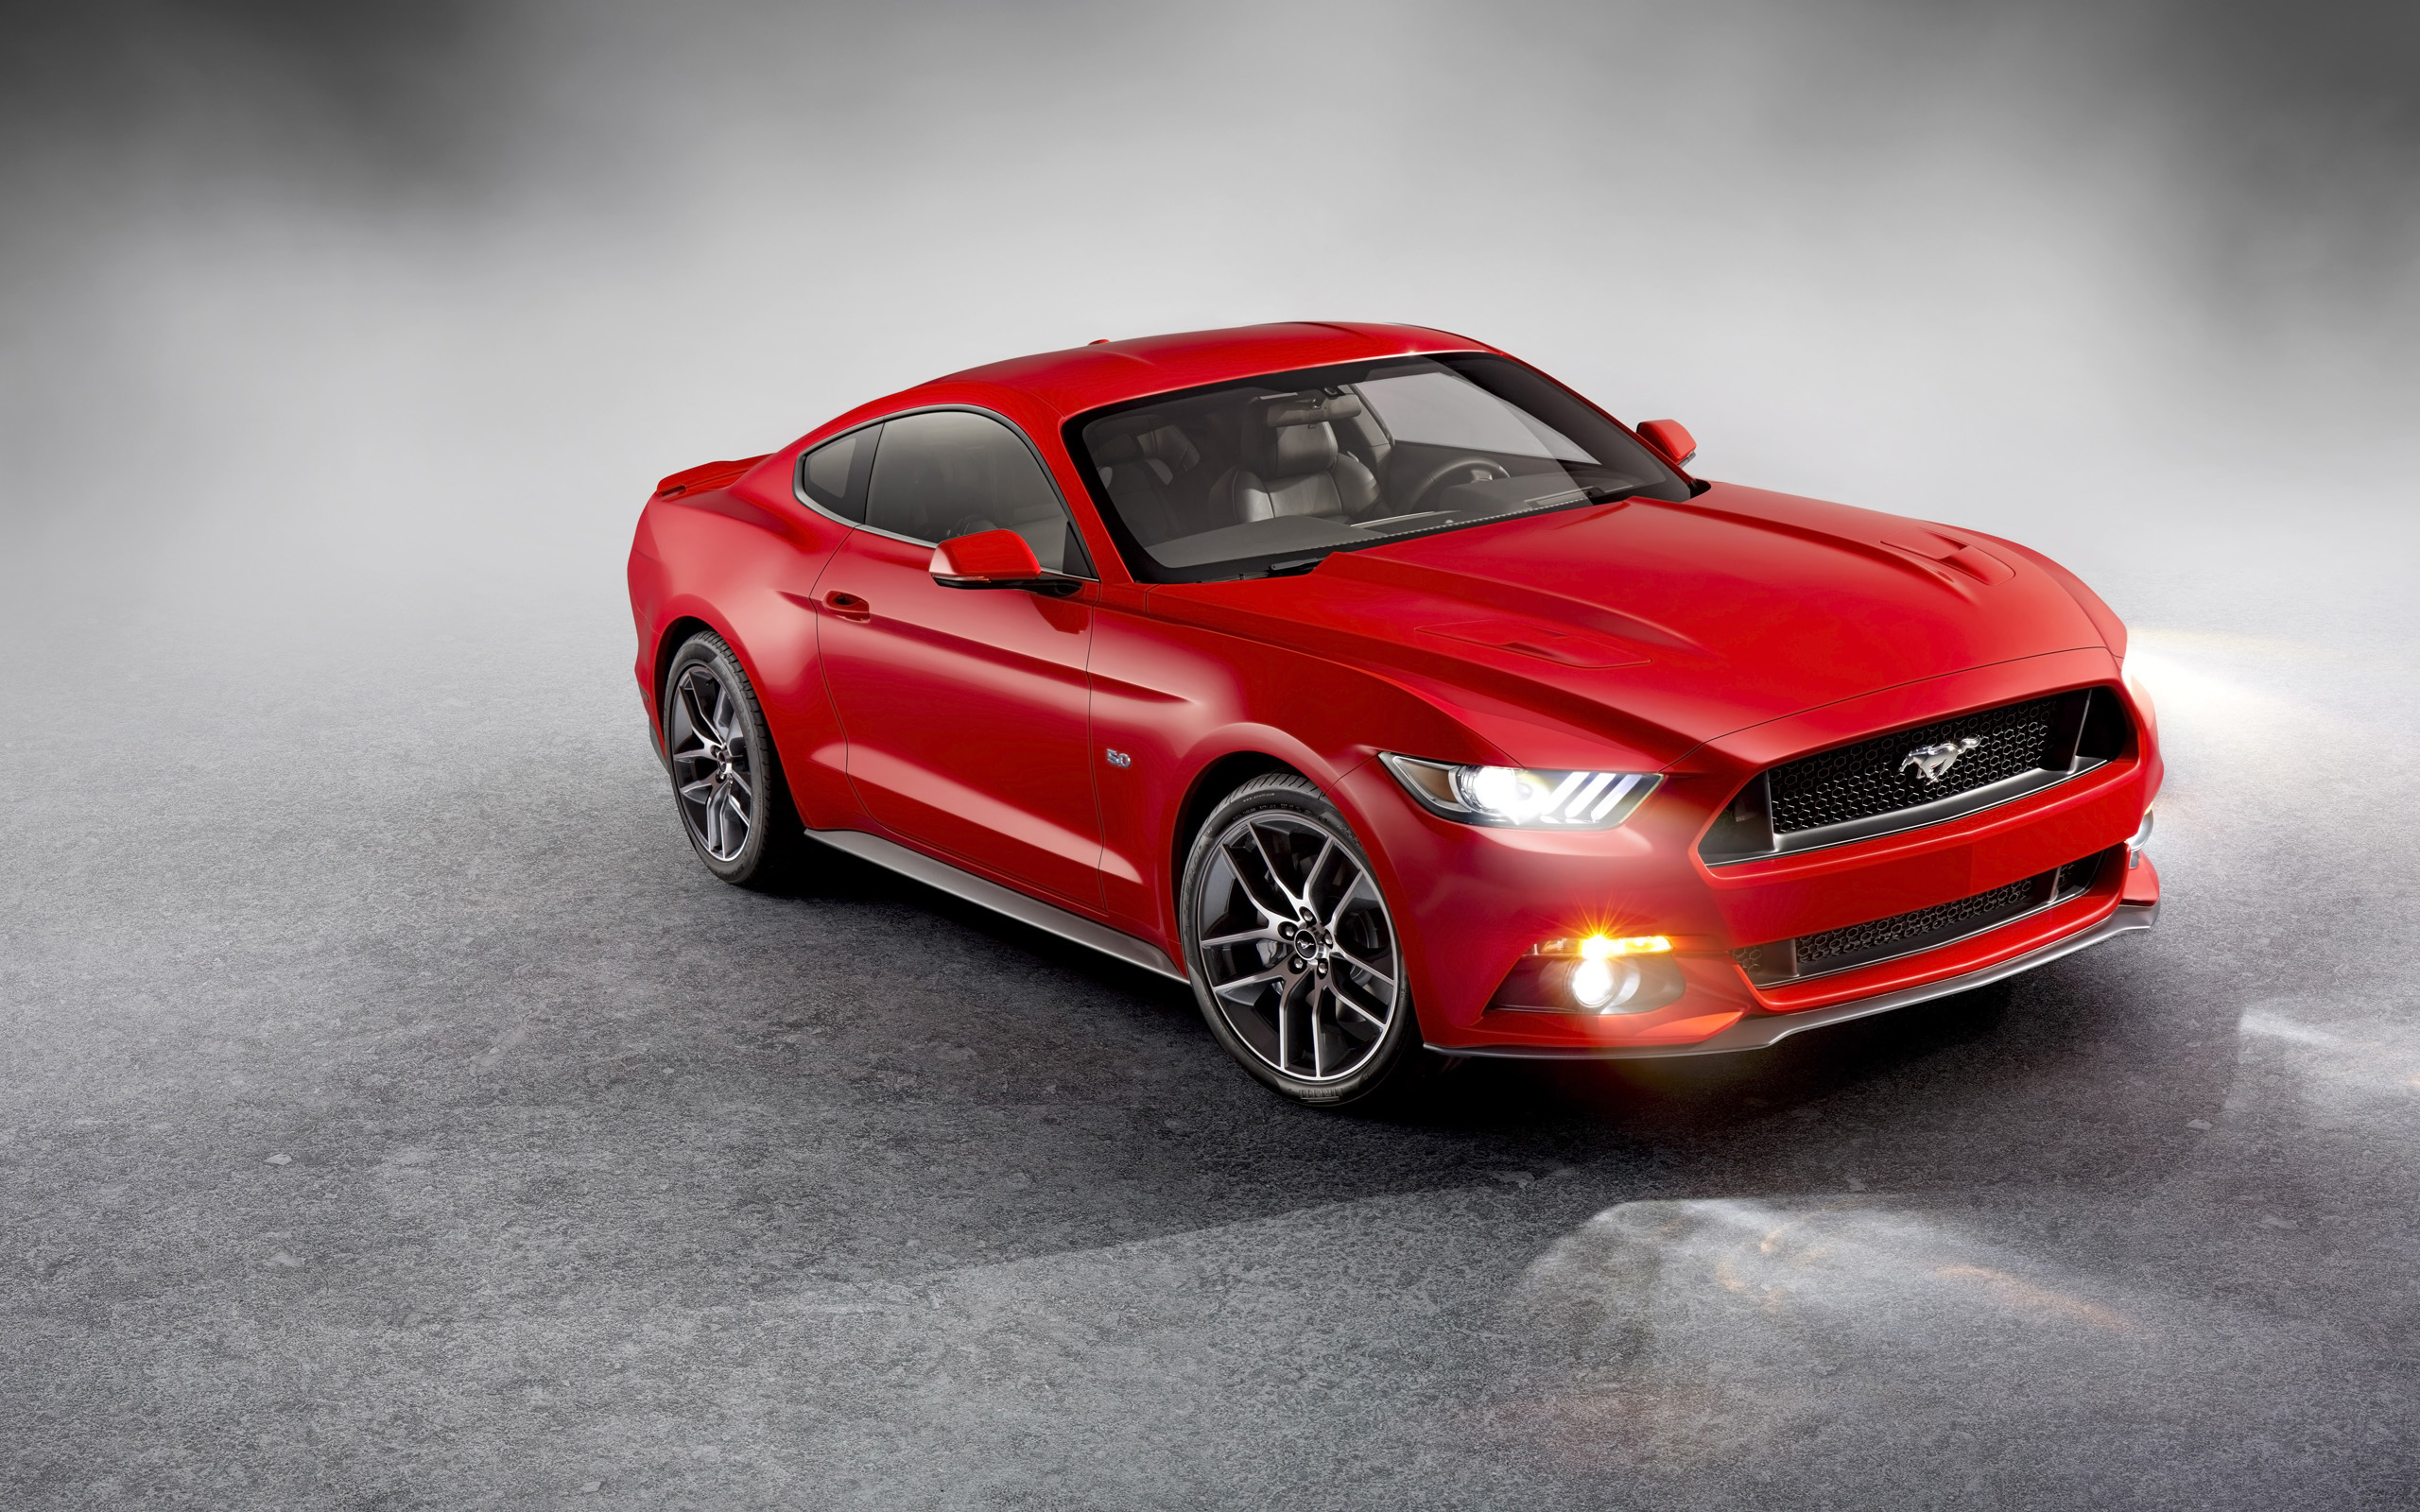 2015 Ford Mustang 2 Wallpaper HD Car Wallpapers 2560x1600